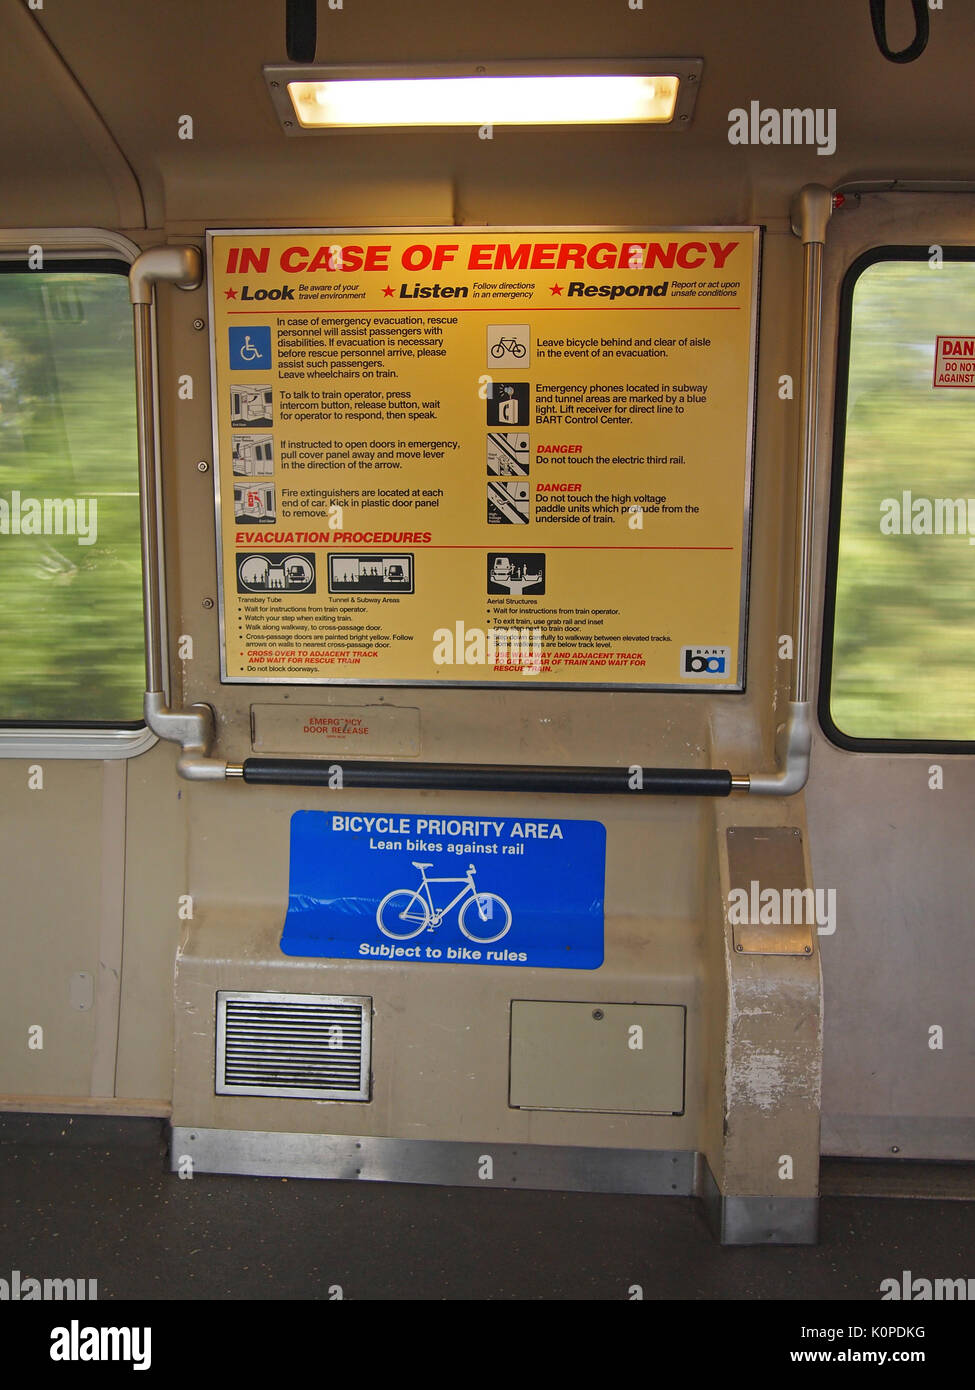 BART in car emergency instructions sign and bicycle area, CA, USA, - Stock Image